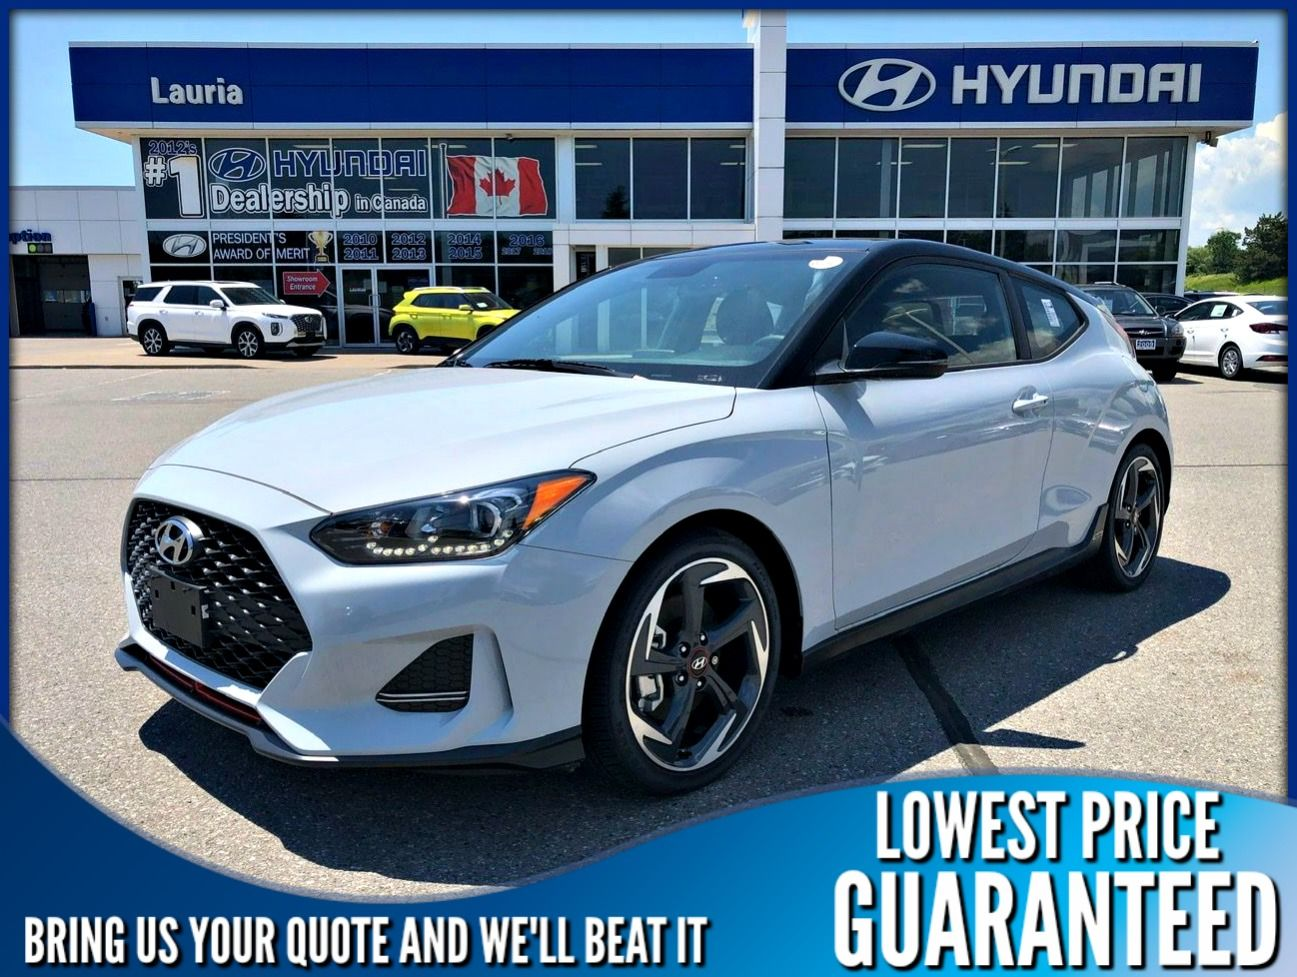 New 2020 Hyundai Veloster Turbo Auto w/Two-Tone Roof